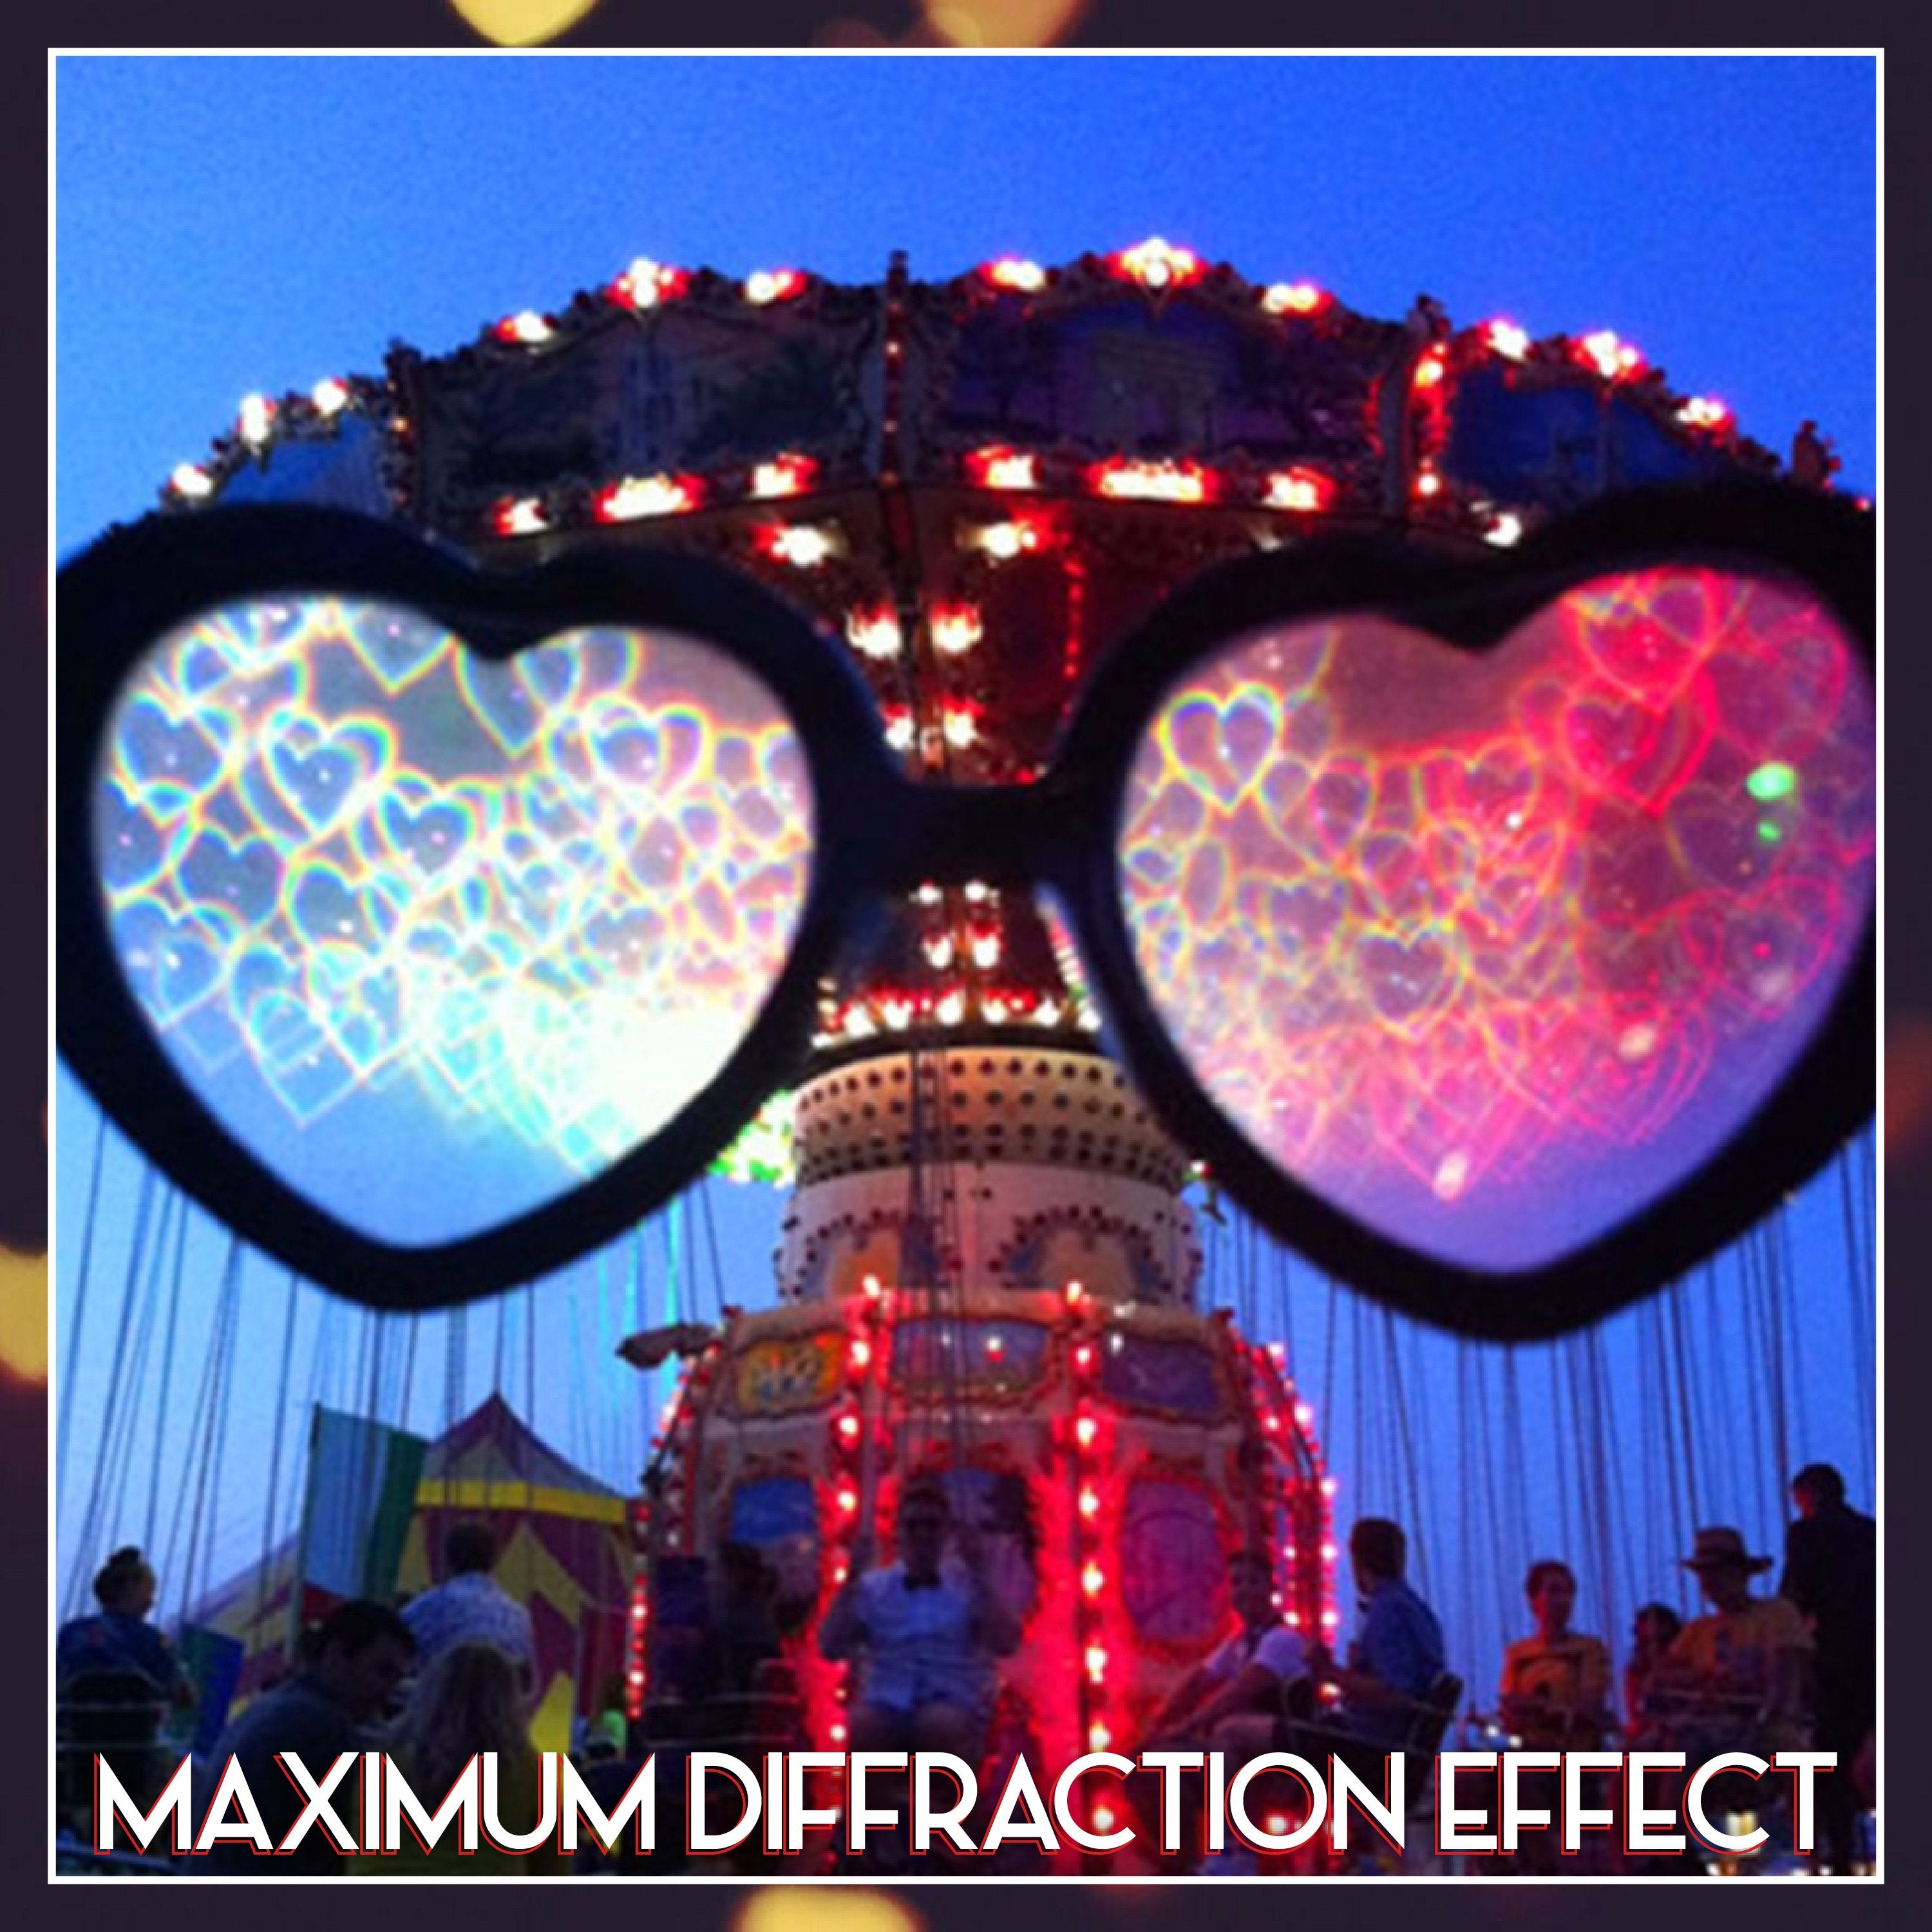 Sassy Heart Diffraction Glasses